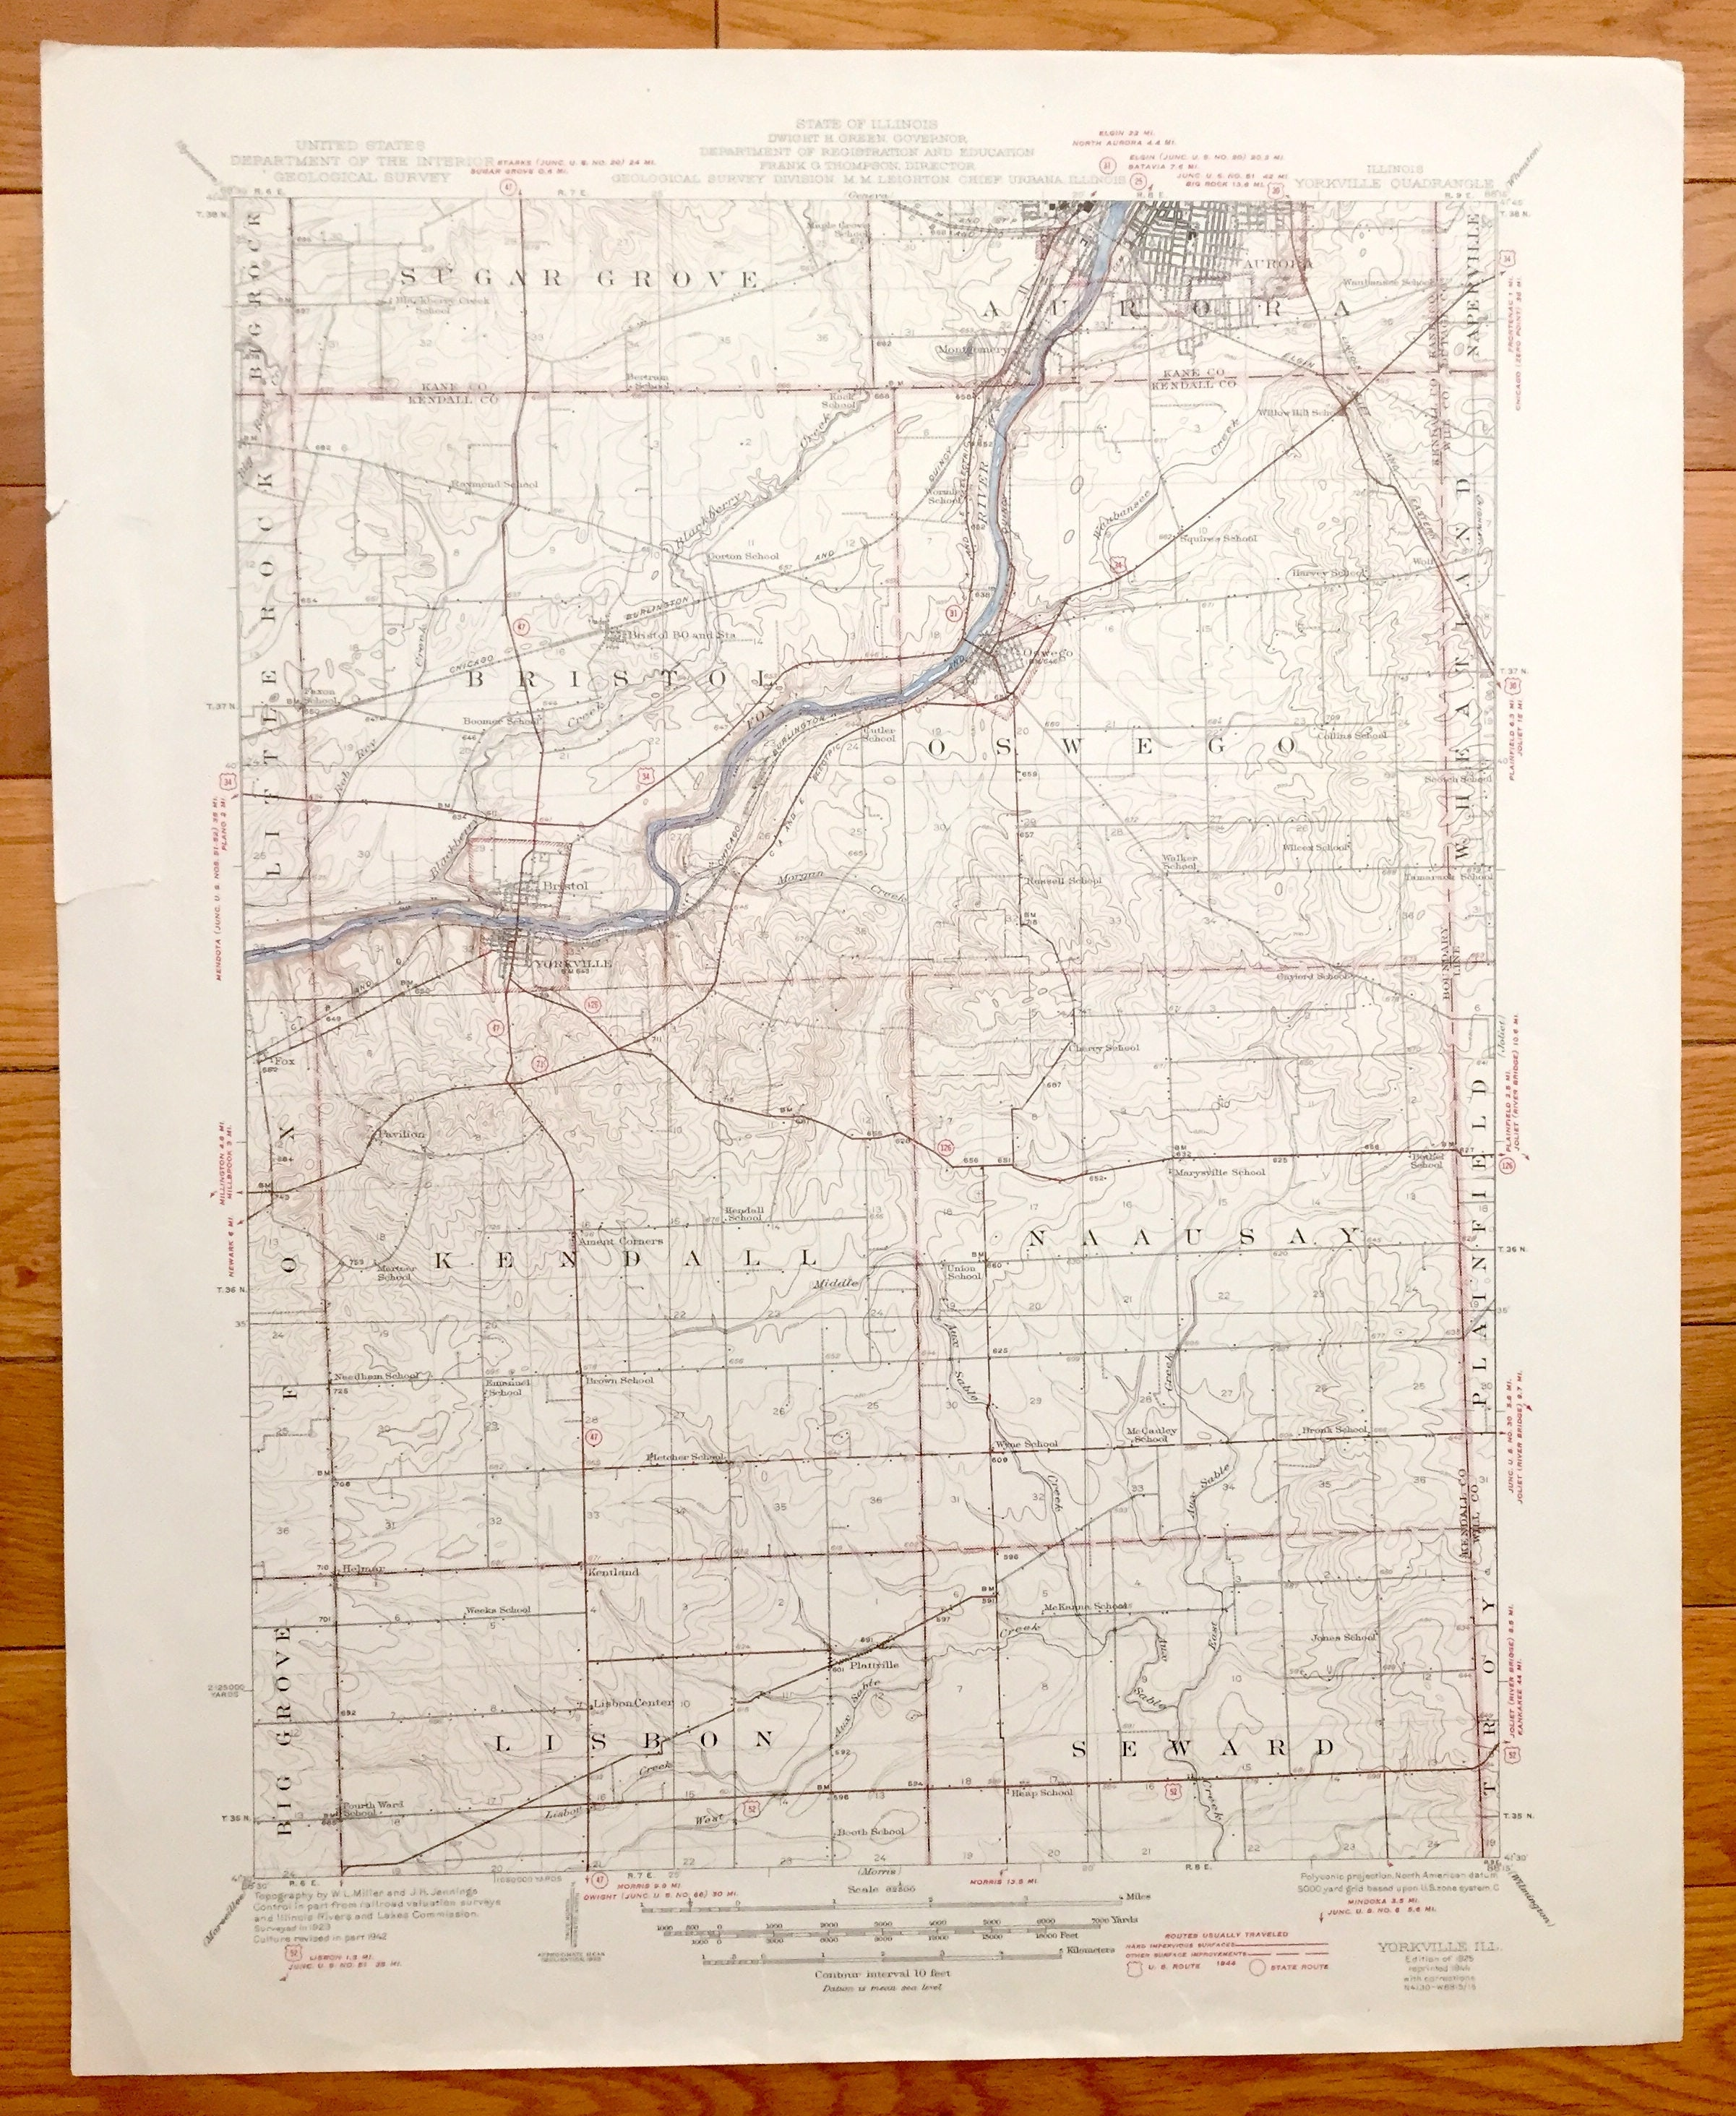 Bristol Illinois Map.Antique Yorkville Illinois 1925 Us Geological Survey Etsy